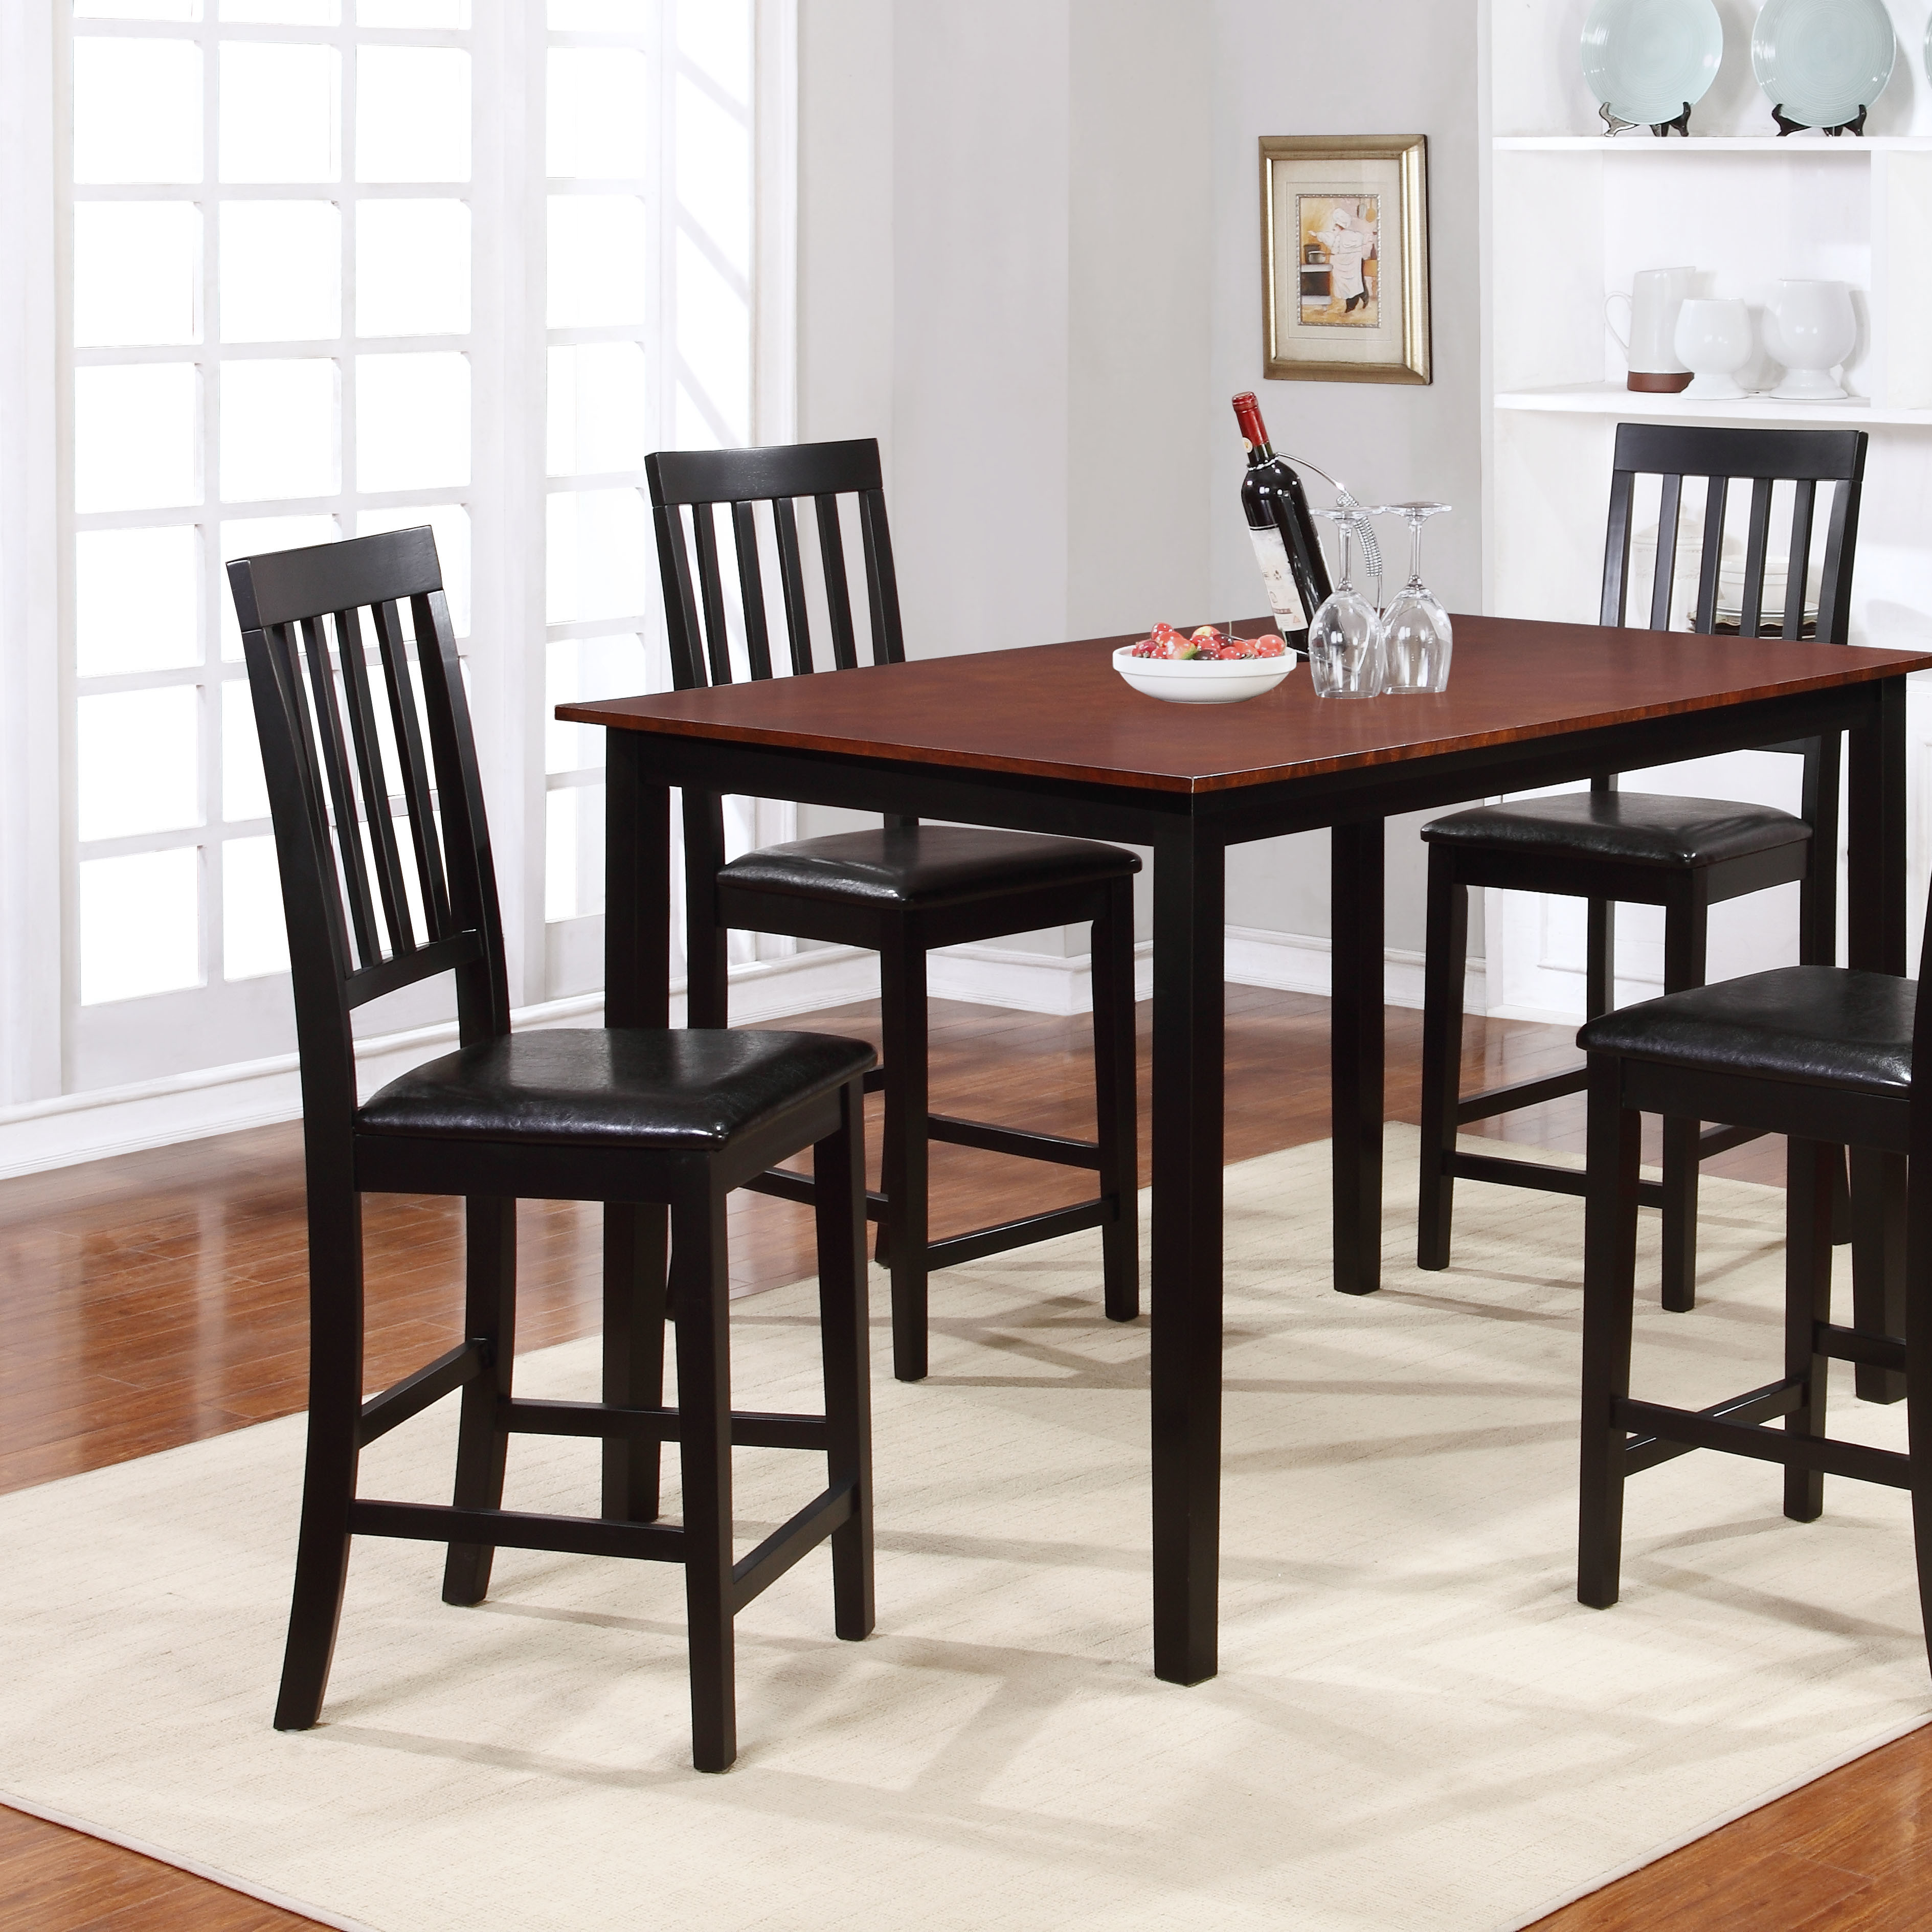 Best ideas about Dining Table Height . Save or Pin Charlton Home Andtree Counter Height Dining Table Now.